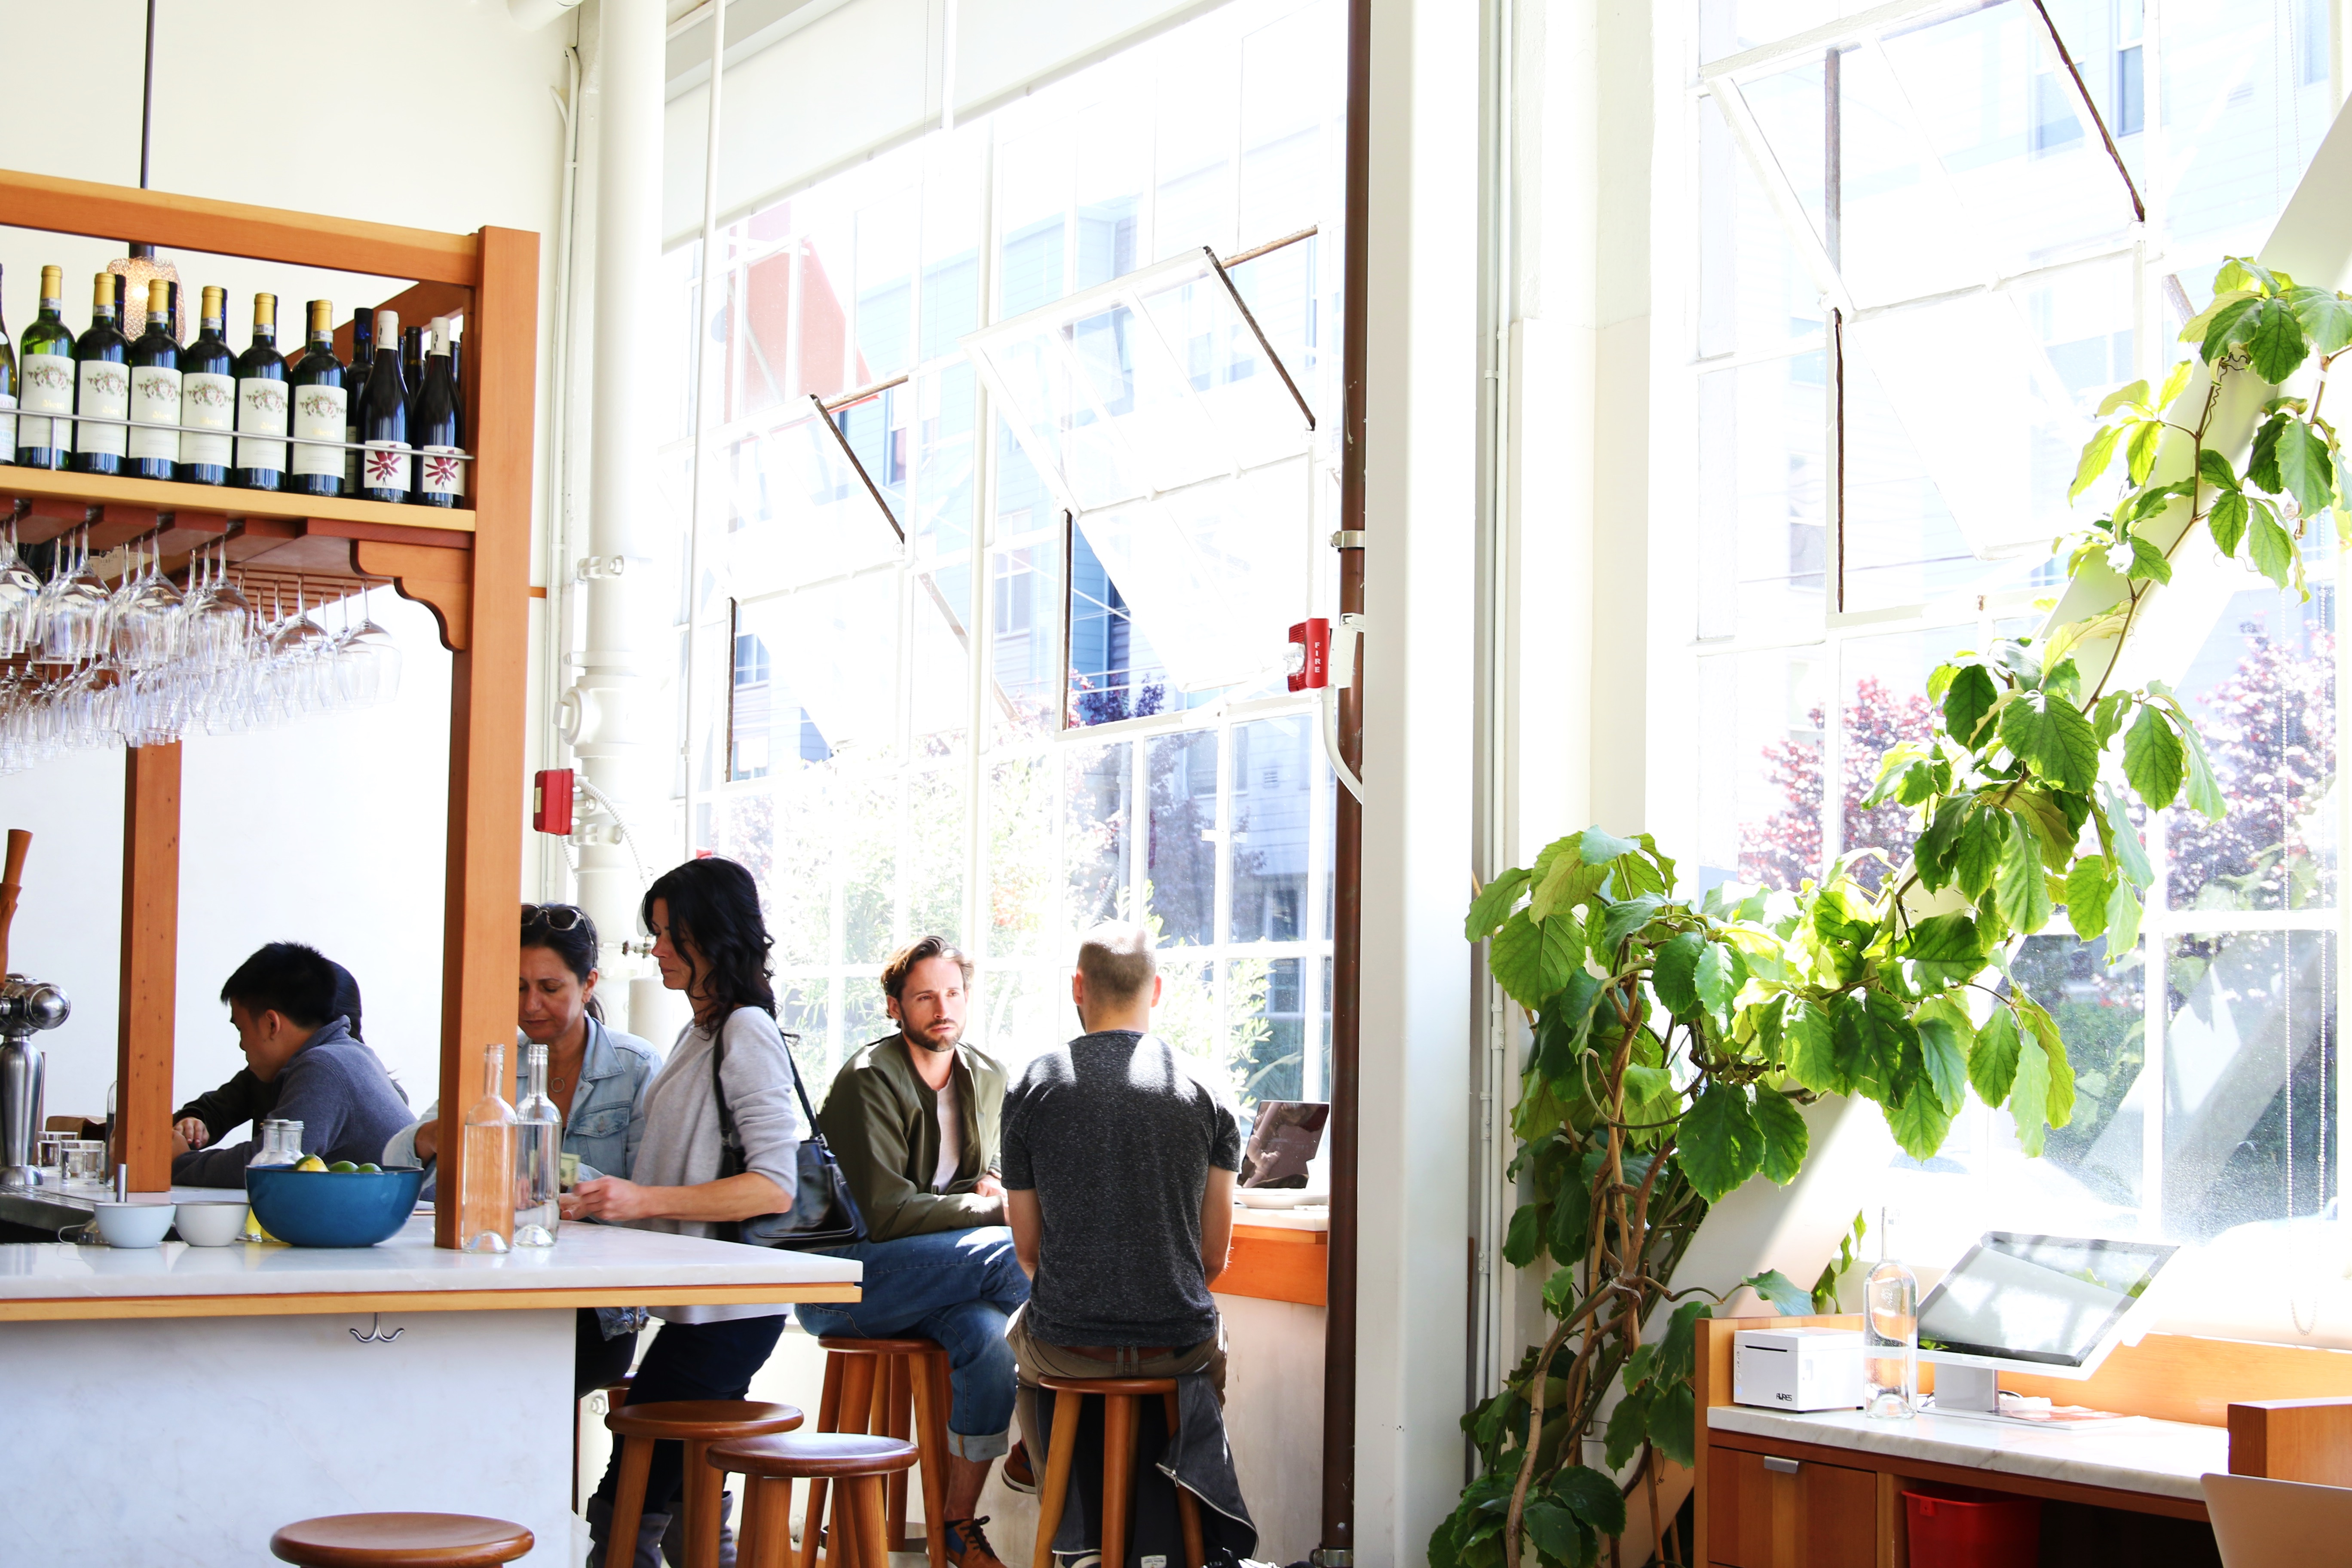 Tartine Manufactory: Highlights and Thoughts